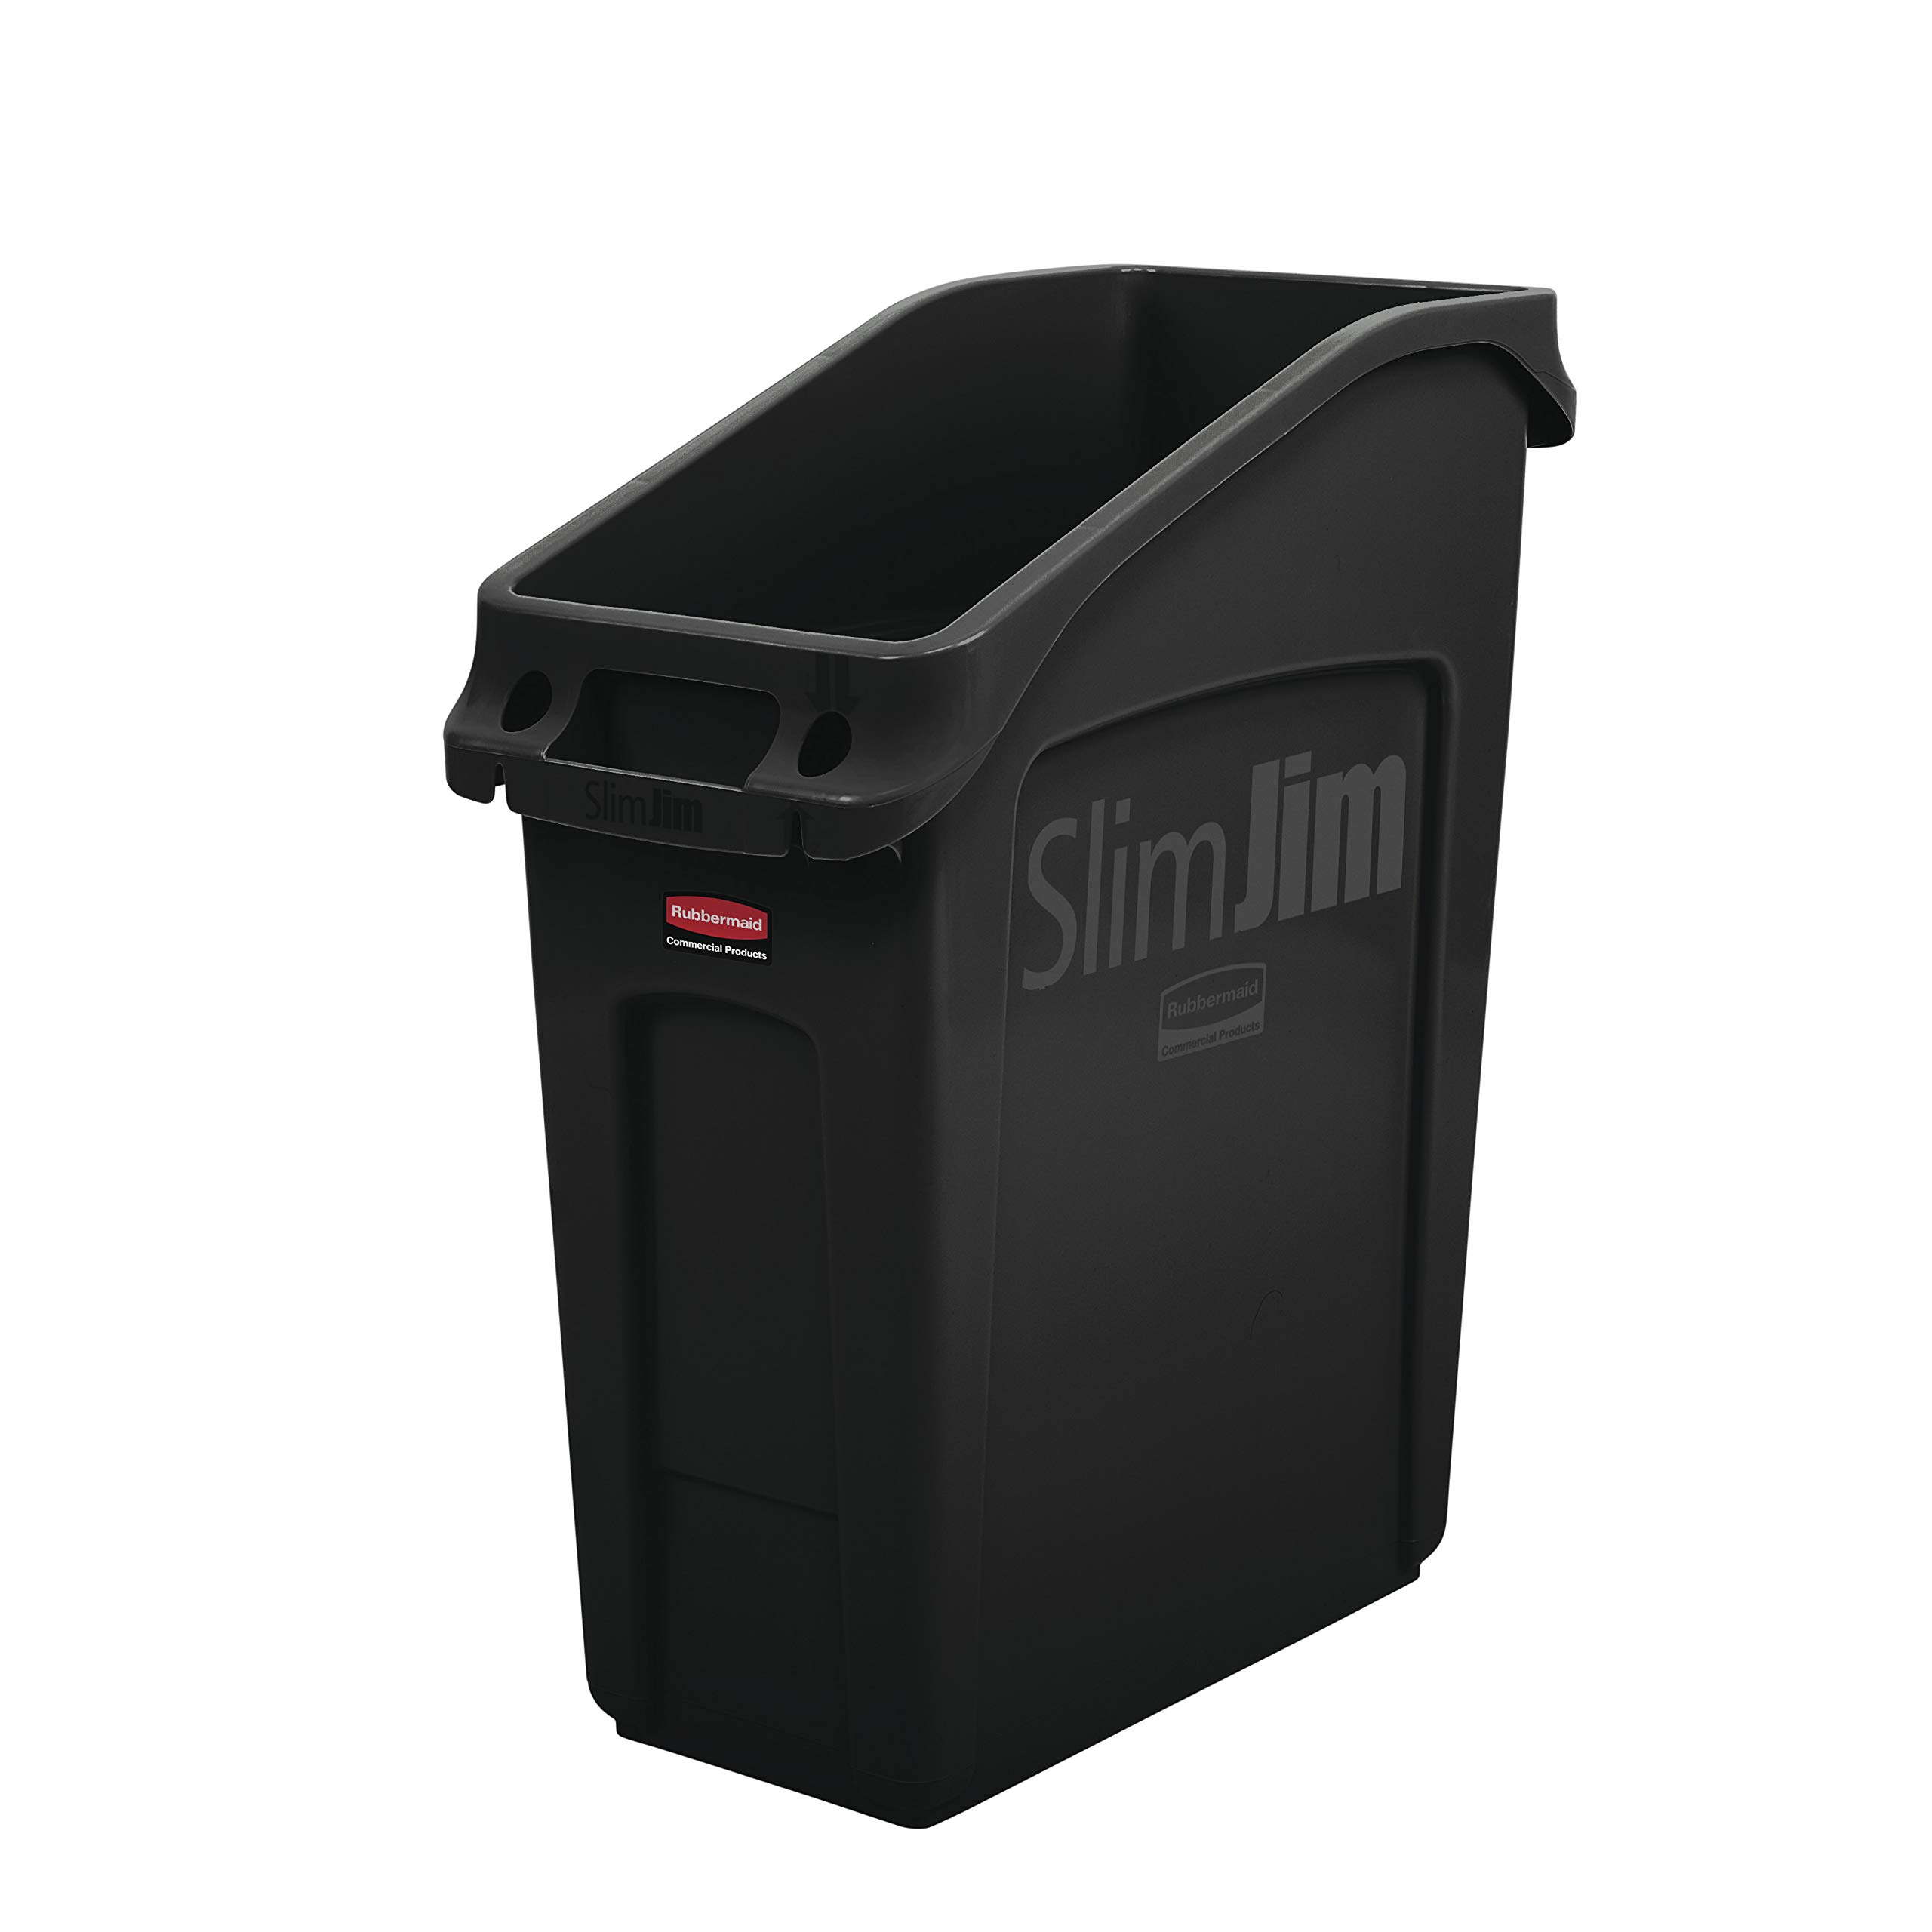 Rubbermaid Commercial Products 2026696 Slim Jim Under-Counter Trash Can with Venting Channels, 13 Gallon, Black by Rubbermaid Commercial Products